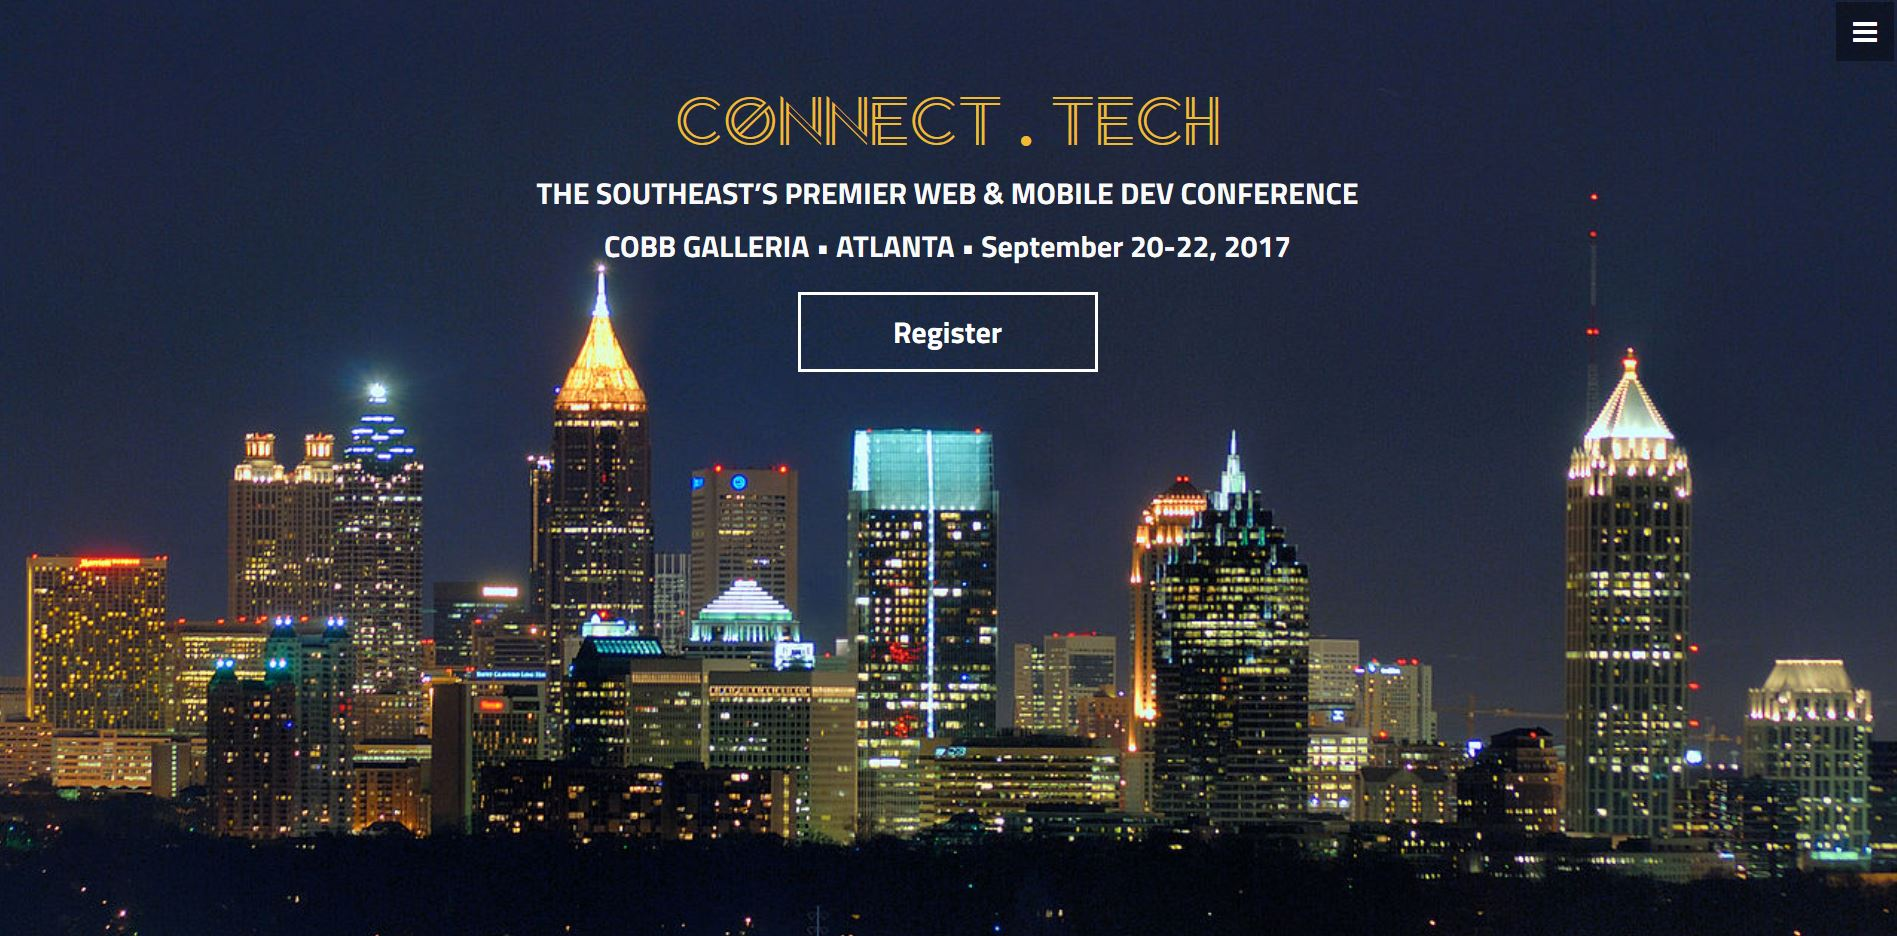 connect_tech2017.jpg